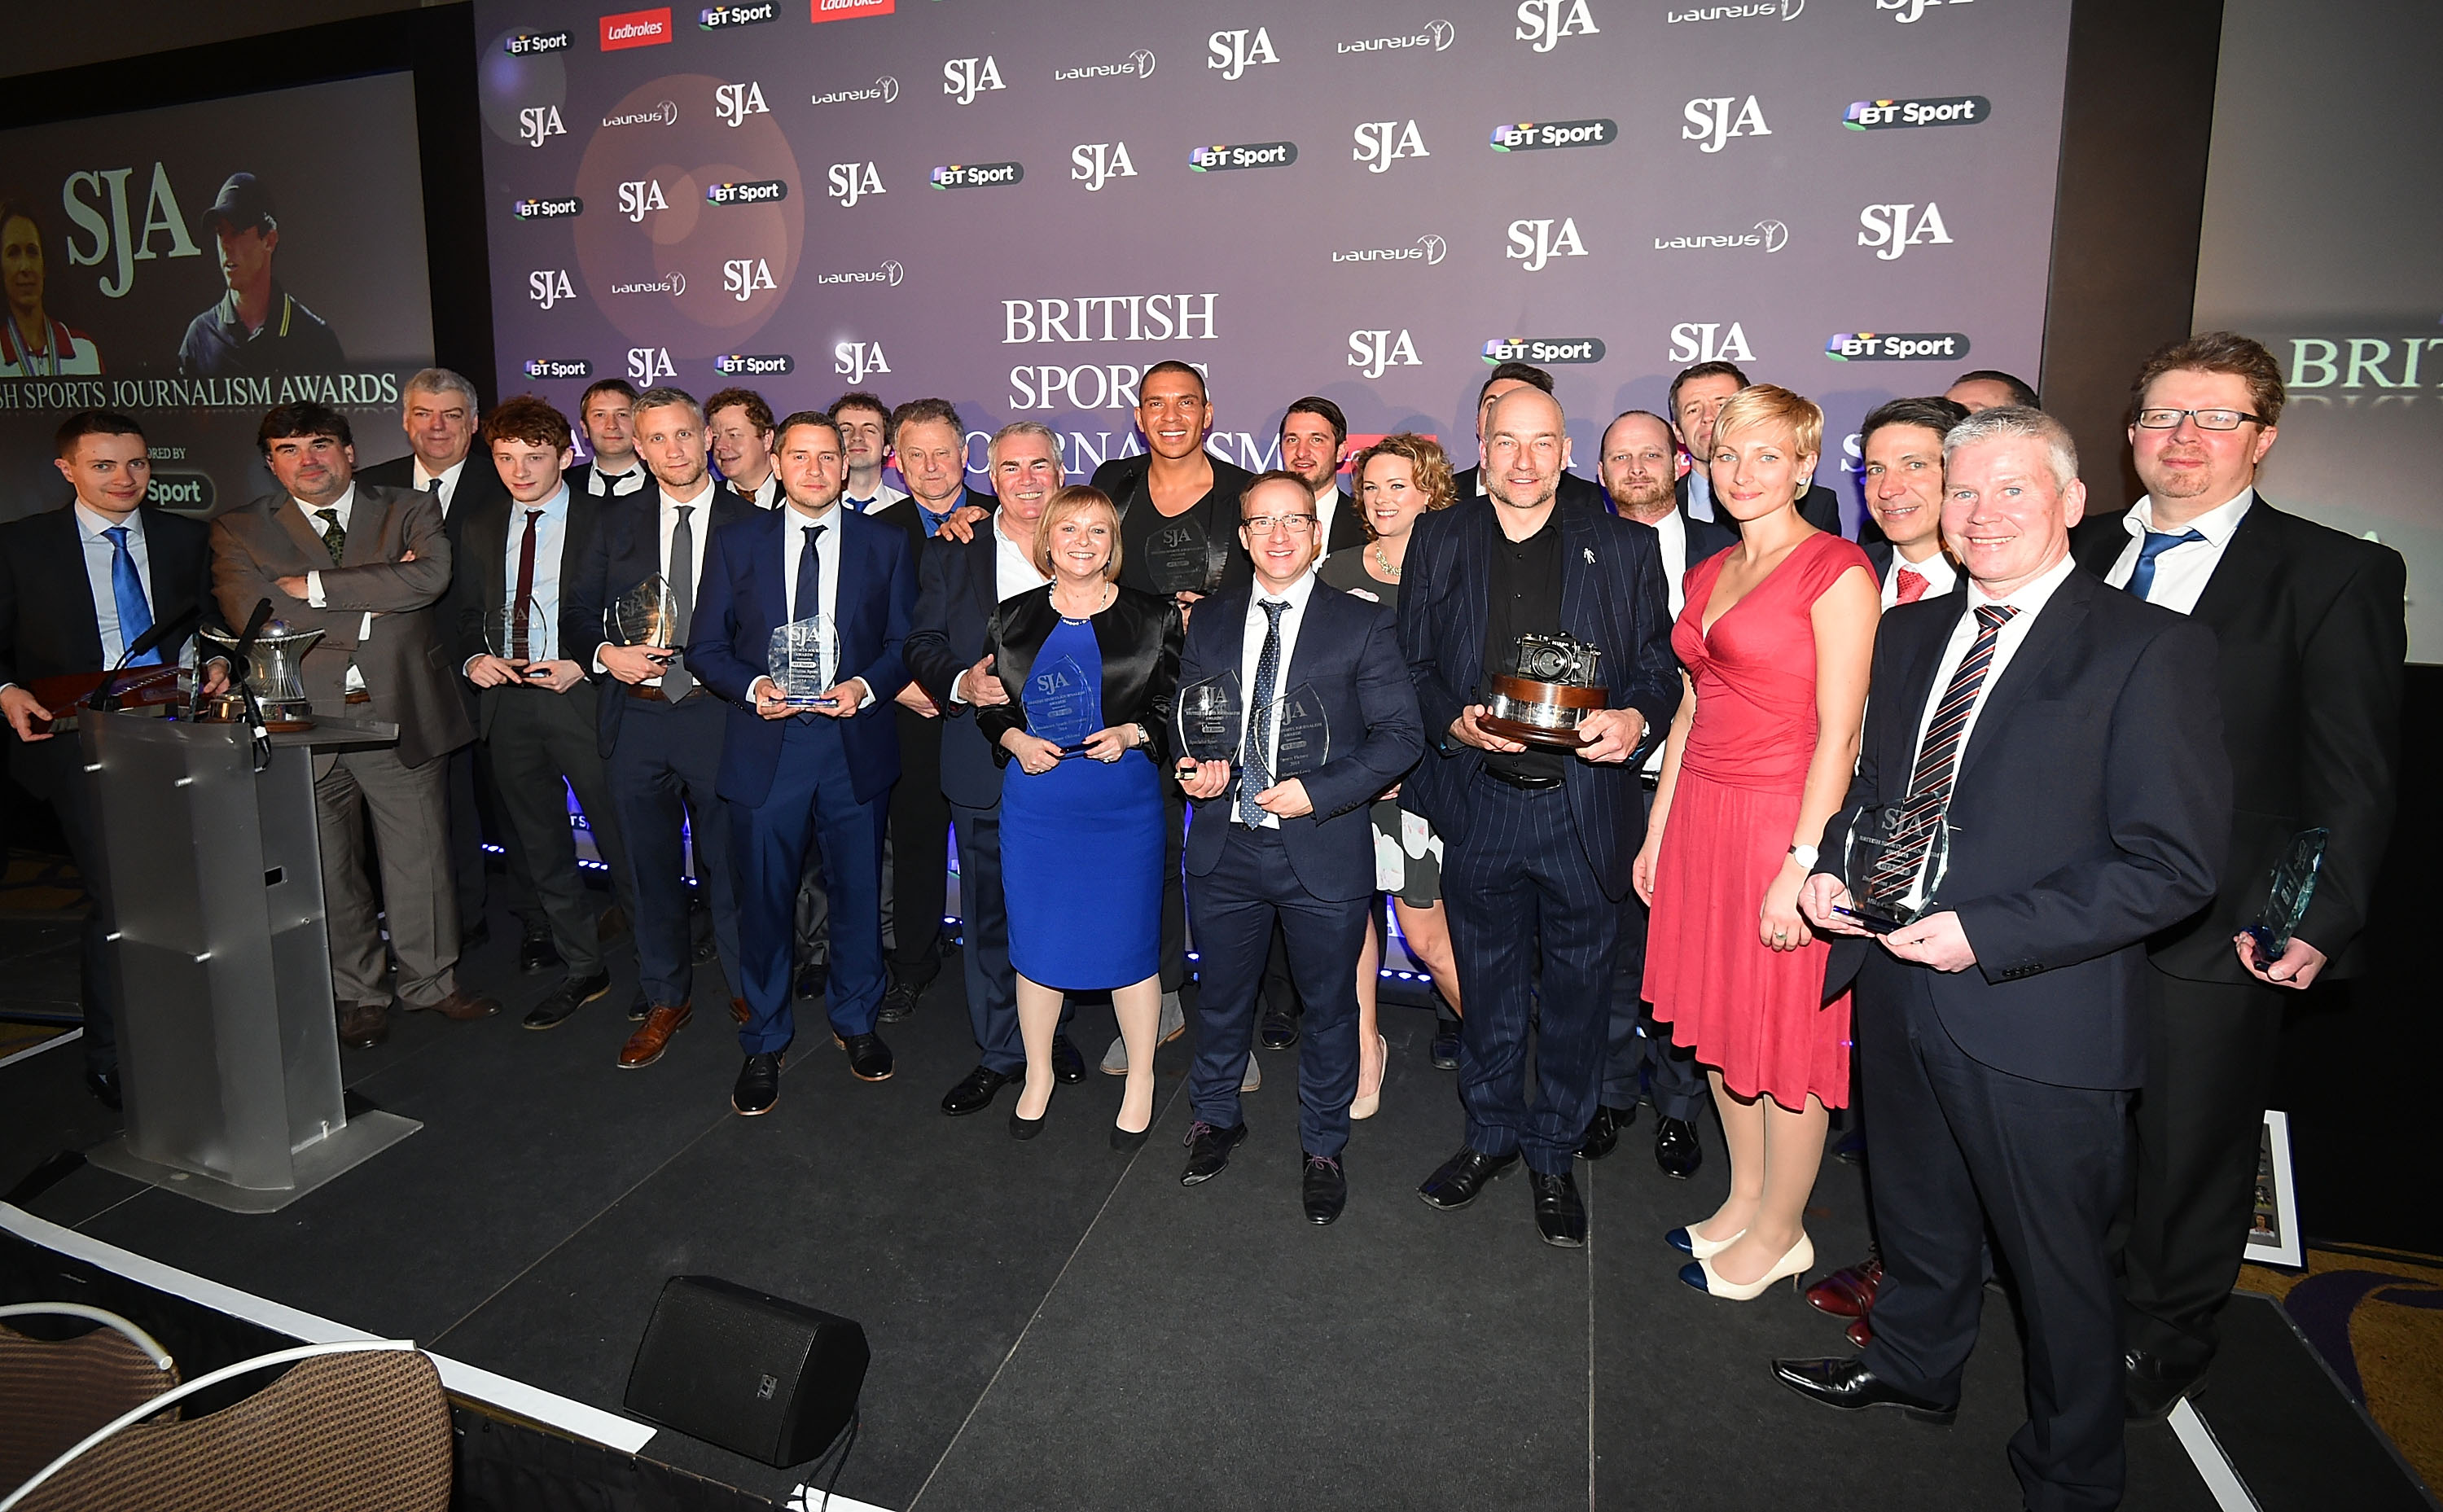 Entries for 2016 Sports Journalism Awards are open until Jan 18